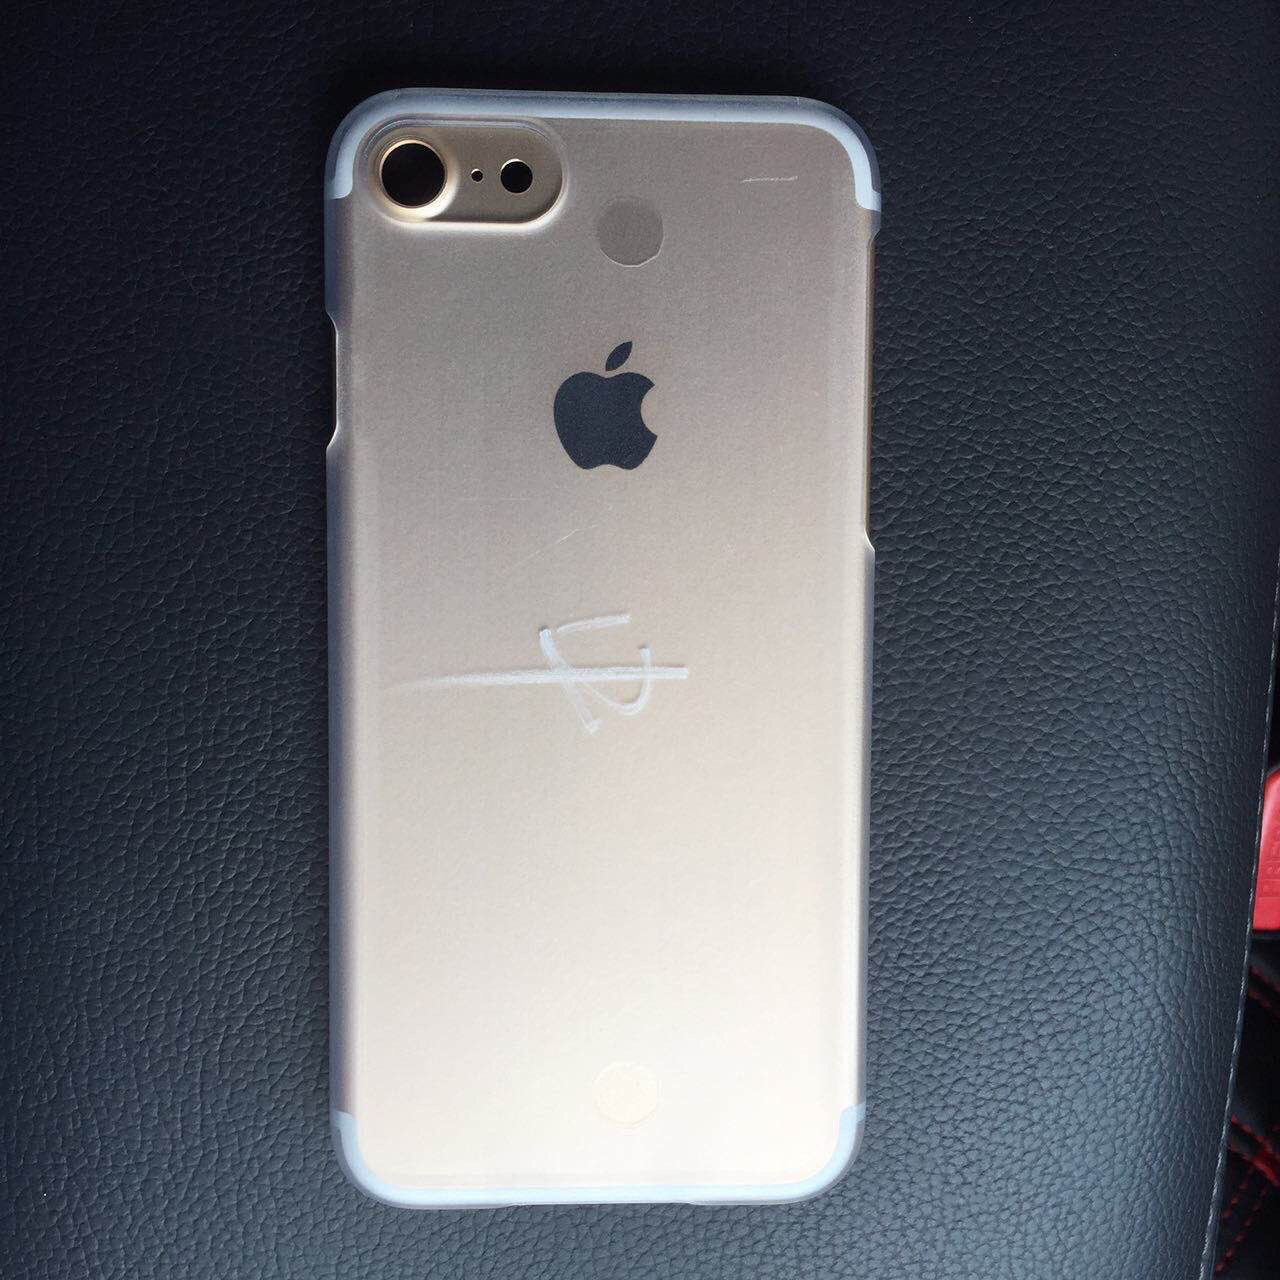 1467012513_alleged-iphone-7-chassis.jpg